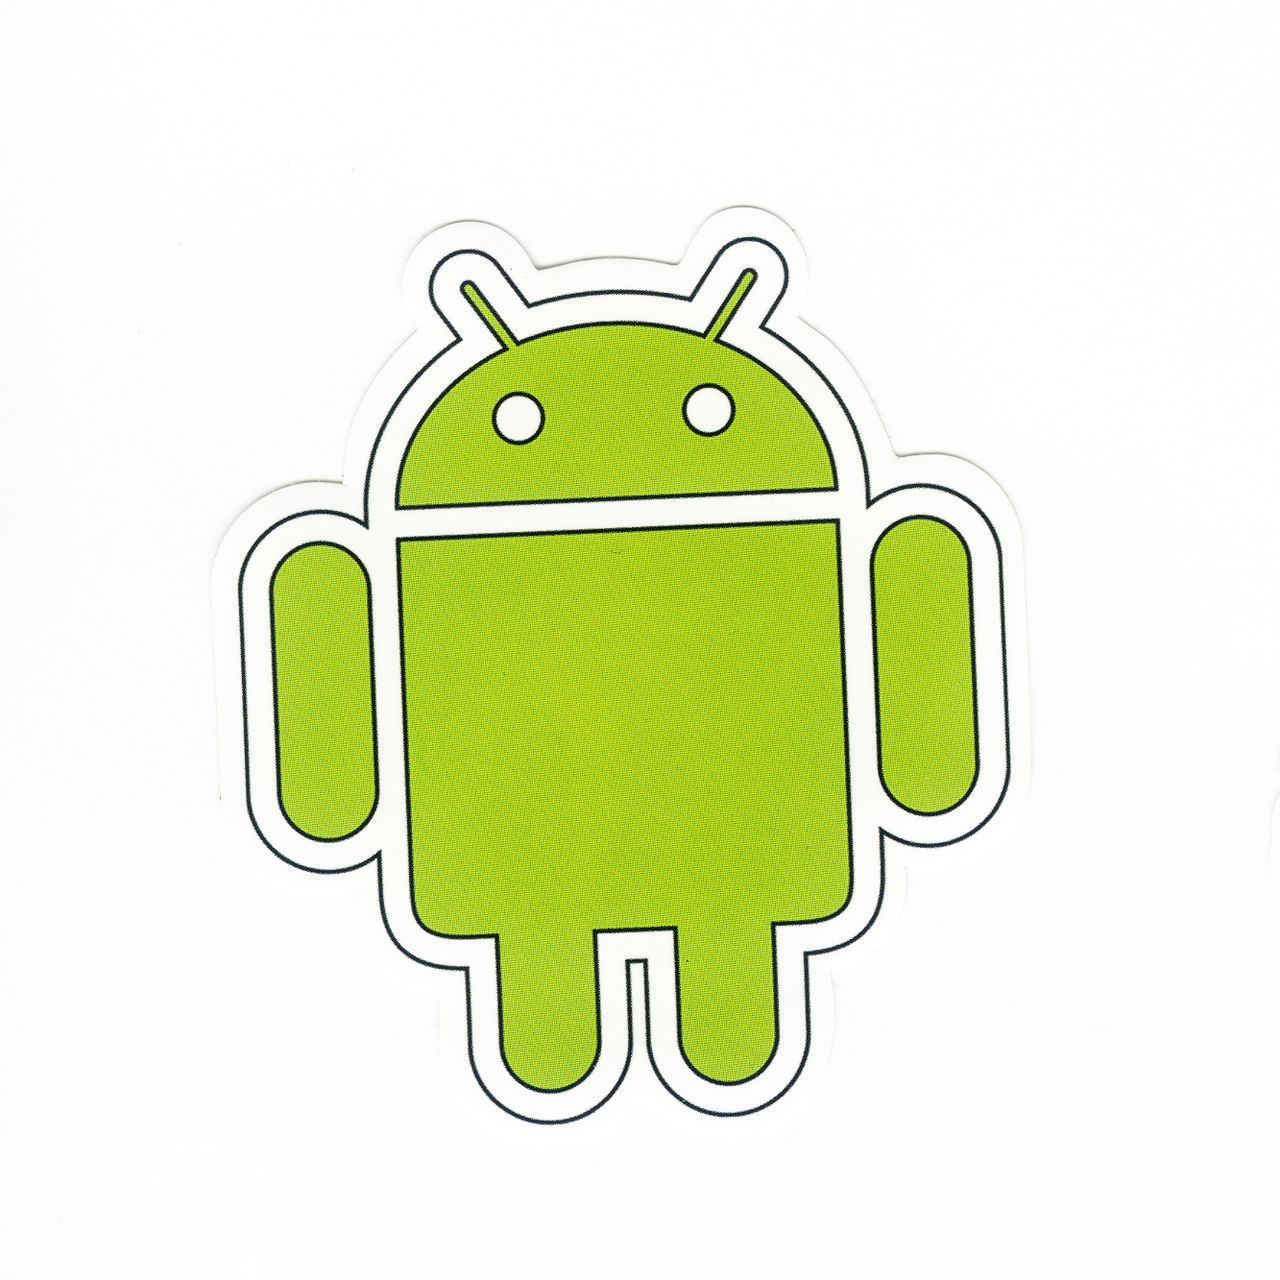 1091 ANDROID LOGO , Height 8 cm, decal sticker